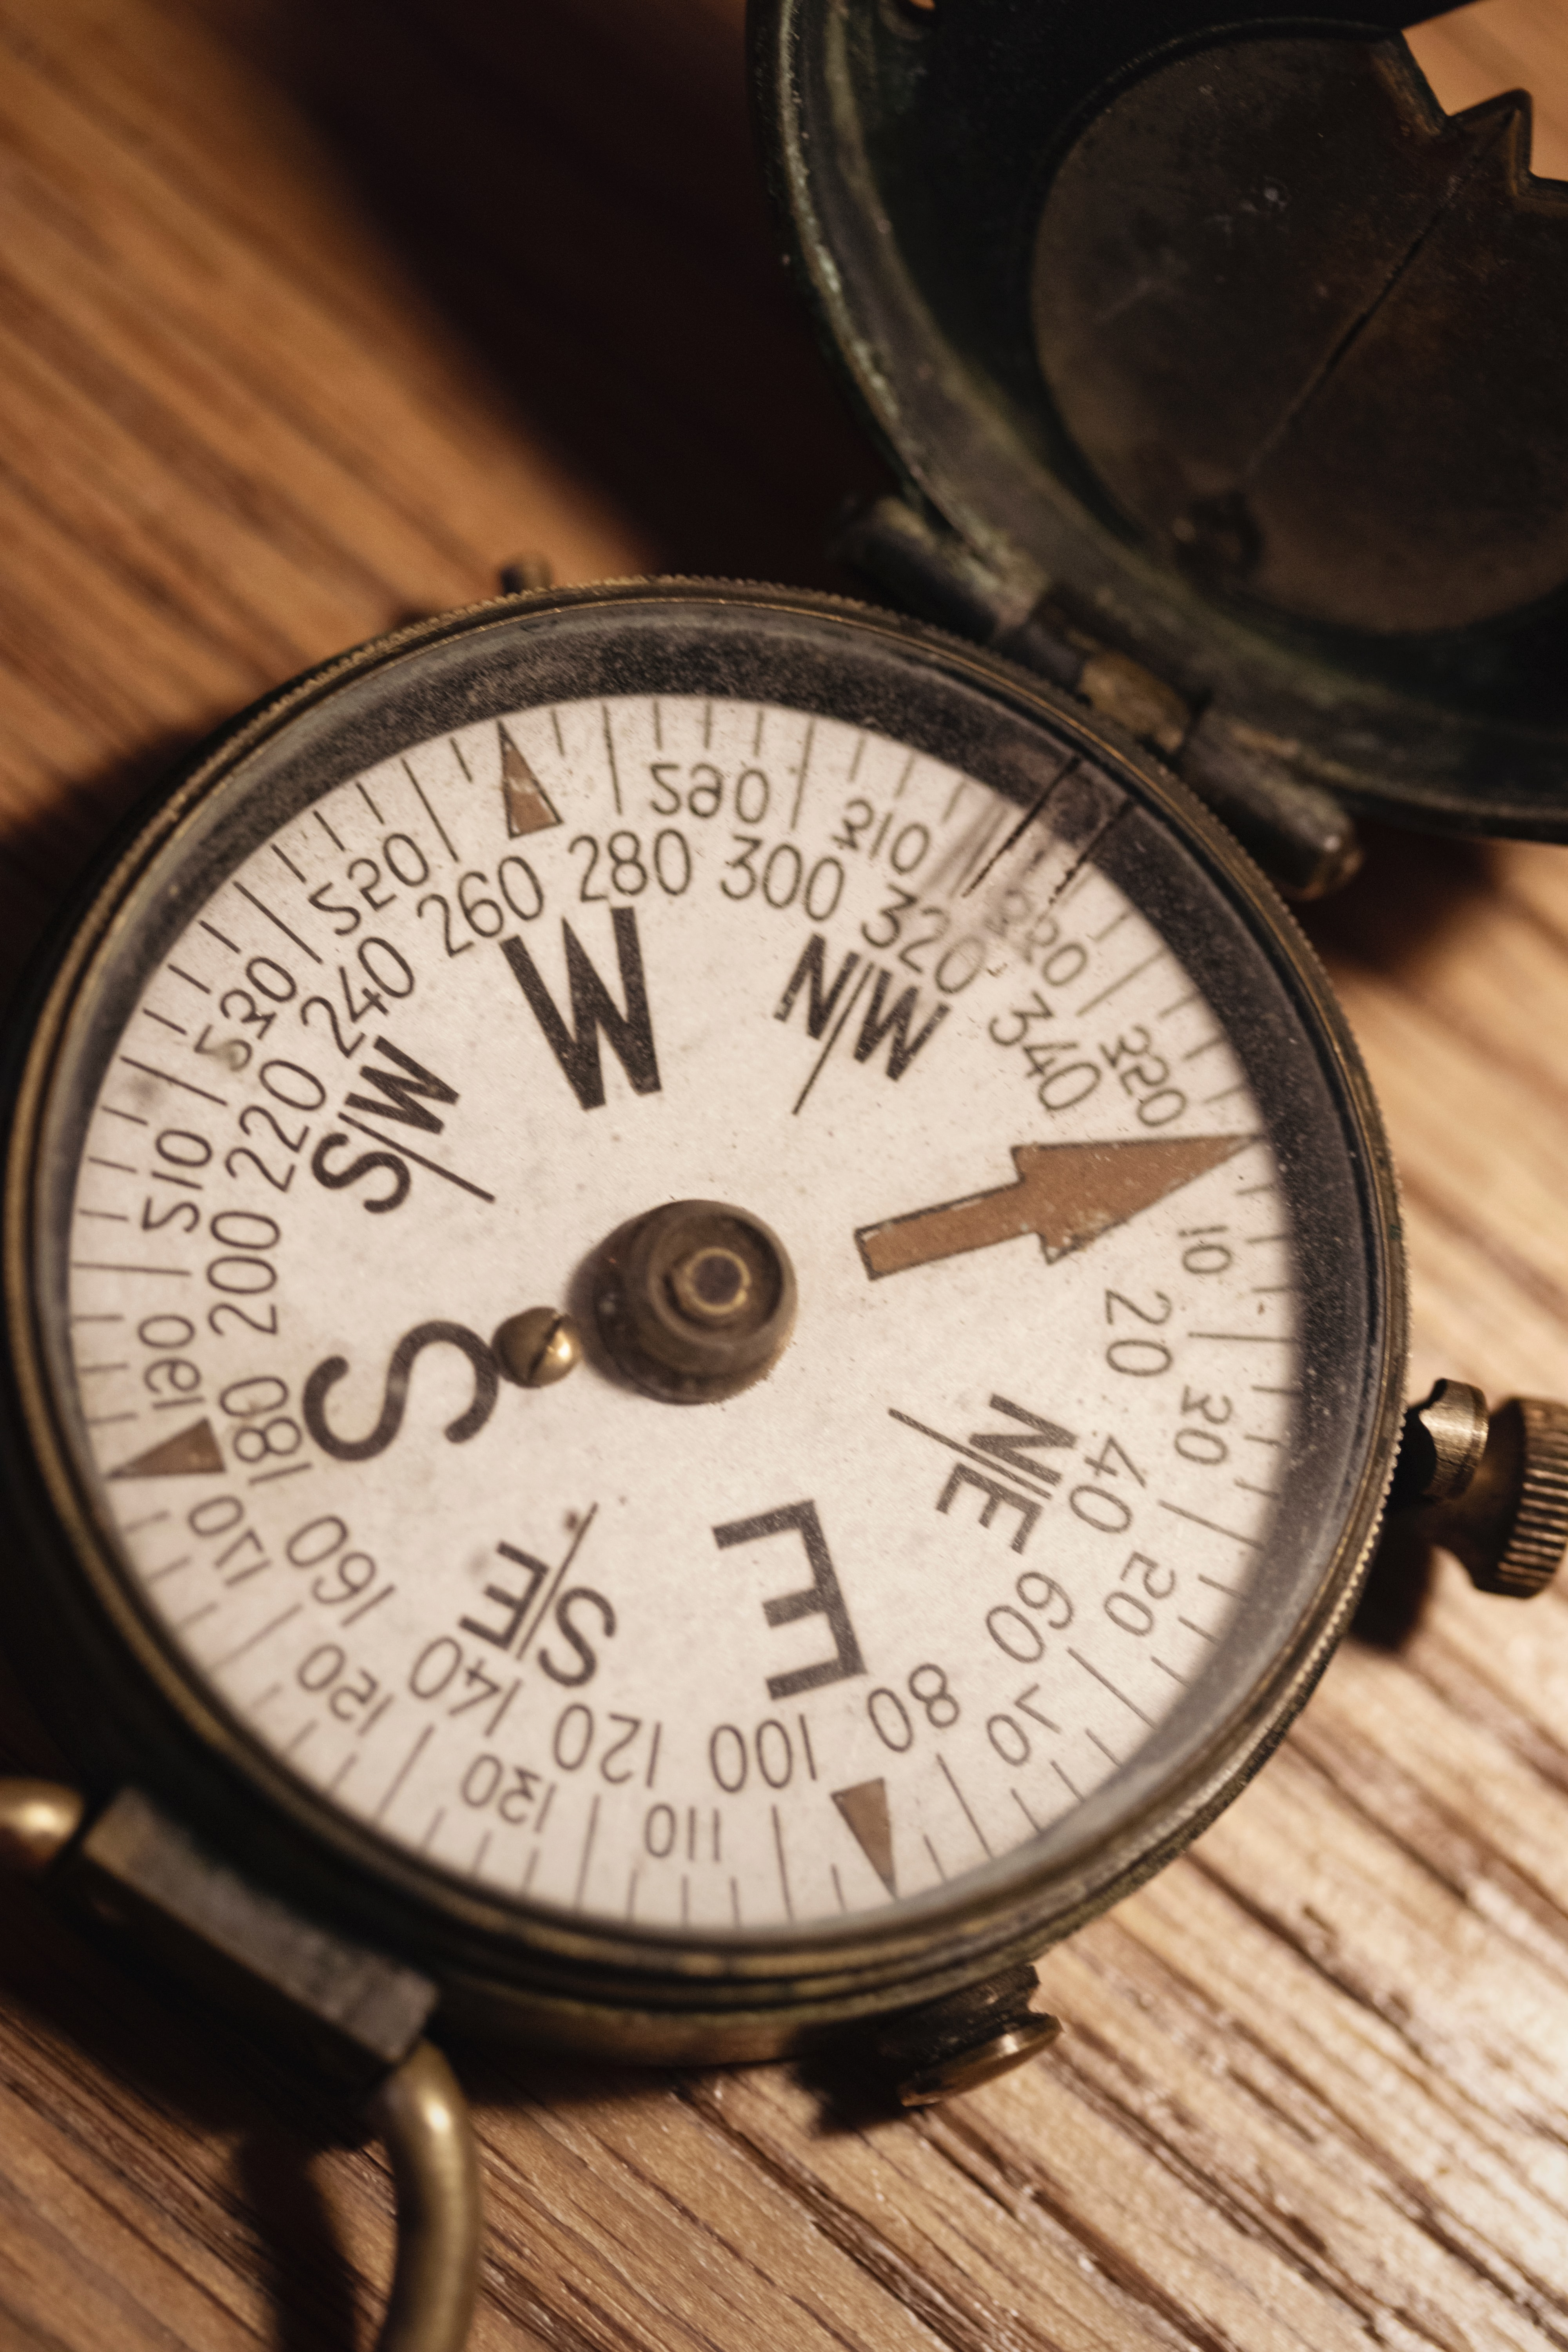 Compass on a table